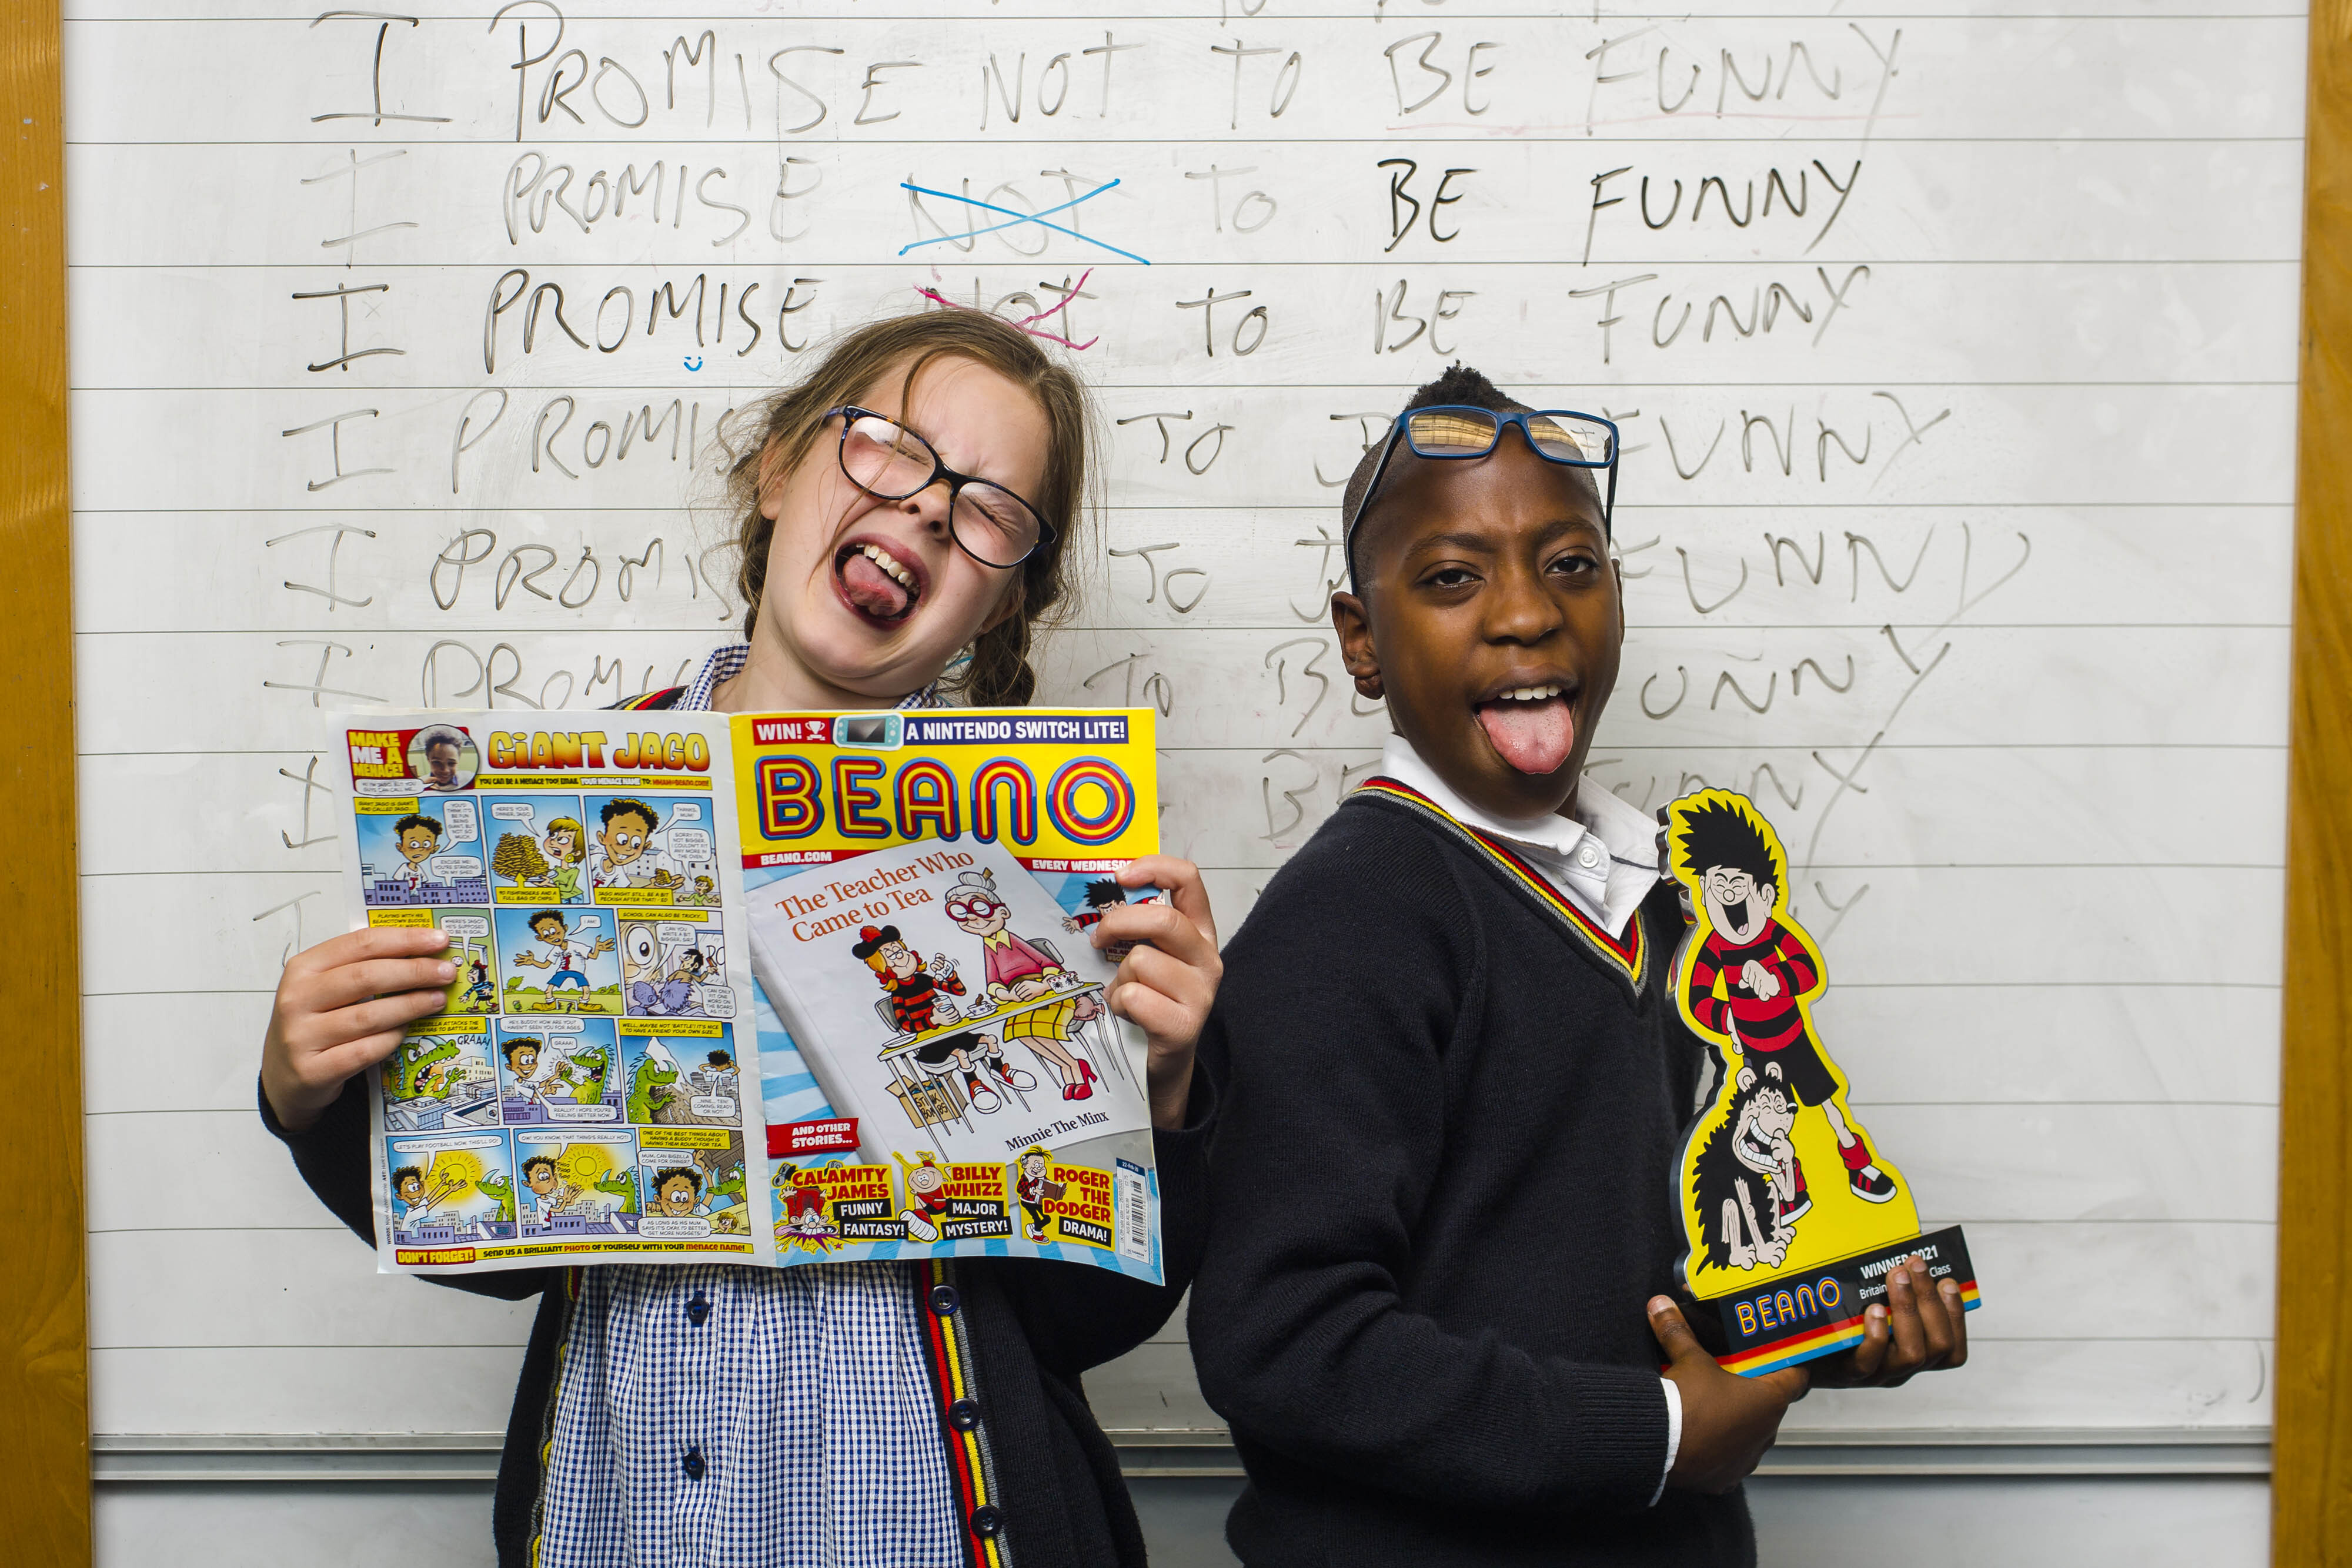 <p>Pupils (left to right) Mia Smith and Vuyo Mdlalose from class 5B at Forthill Primary school in Dundee with the trophy, as their class is unveiled as this year�s winners of Beano's 'Britain's Funniest Class' national joke competition. Issue date: Thursday July 15, 2021.</p>